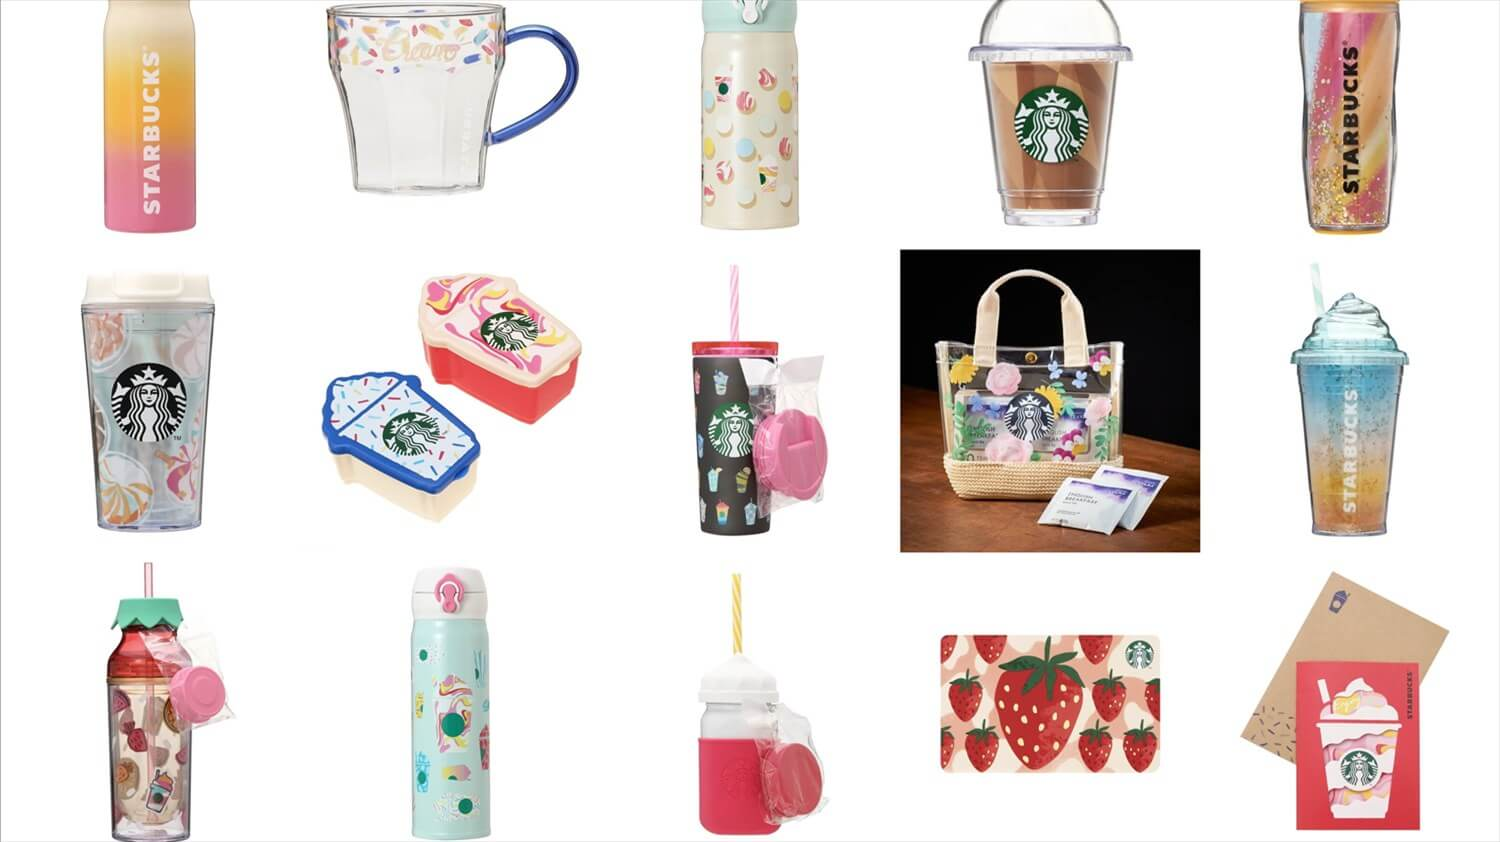 new-starbucks-goods20200409